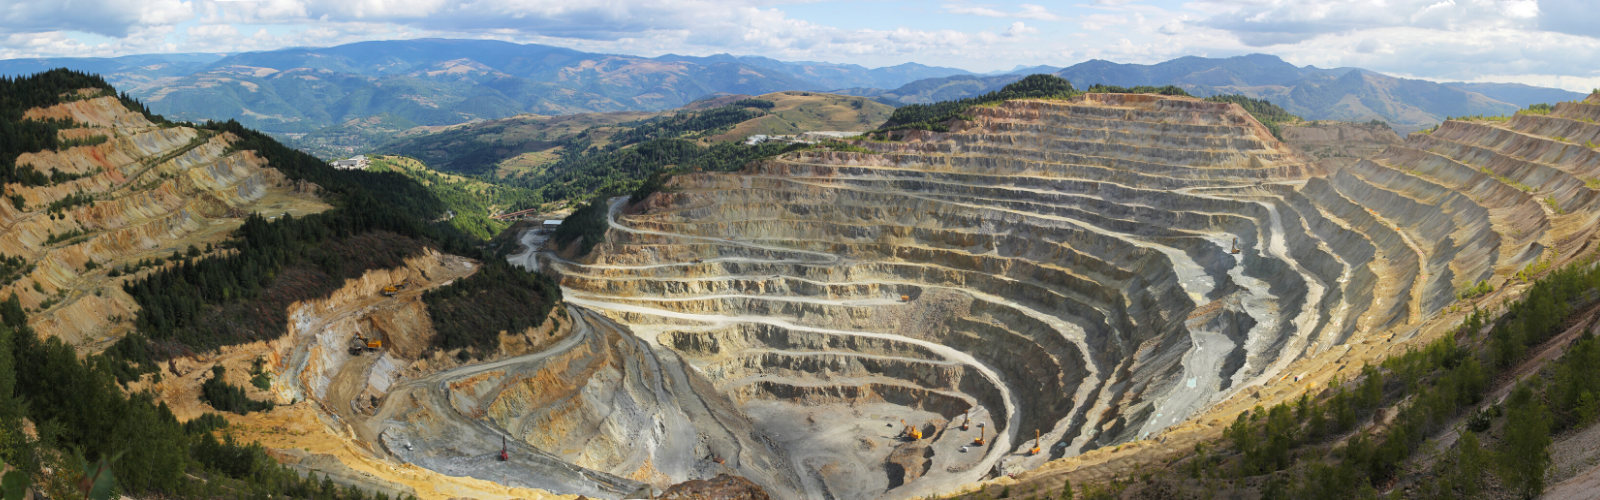 Ariel view of a conflict mineral mine nestled in the mountains with ridges.